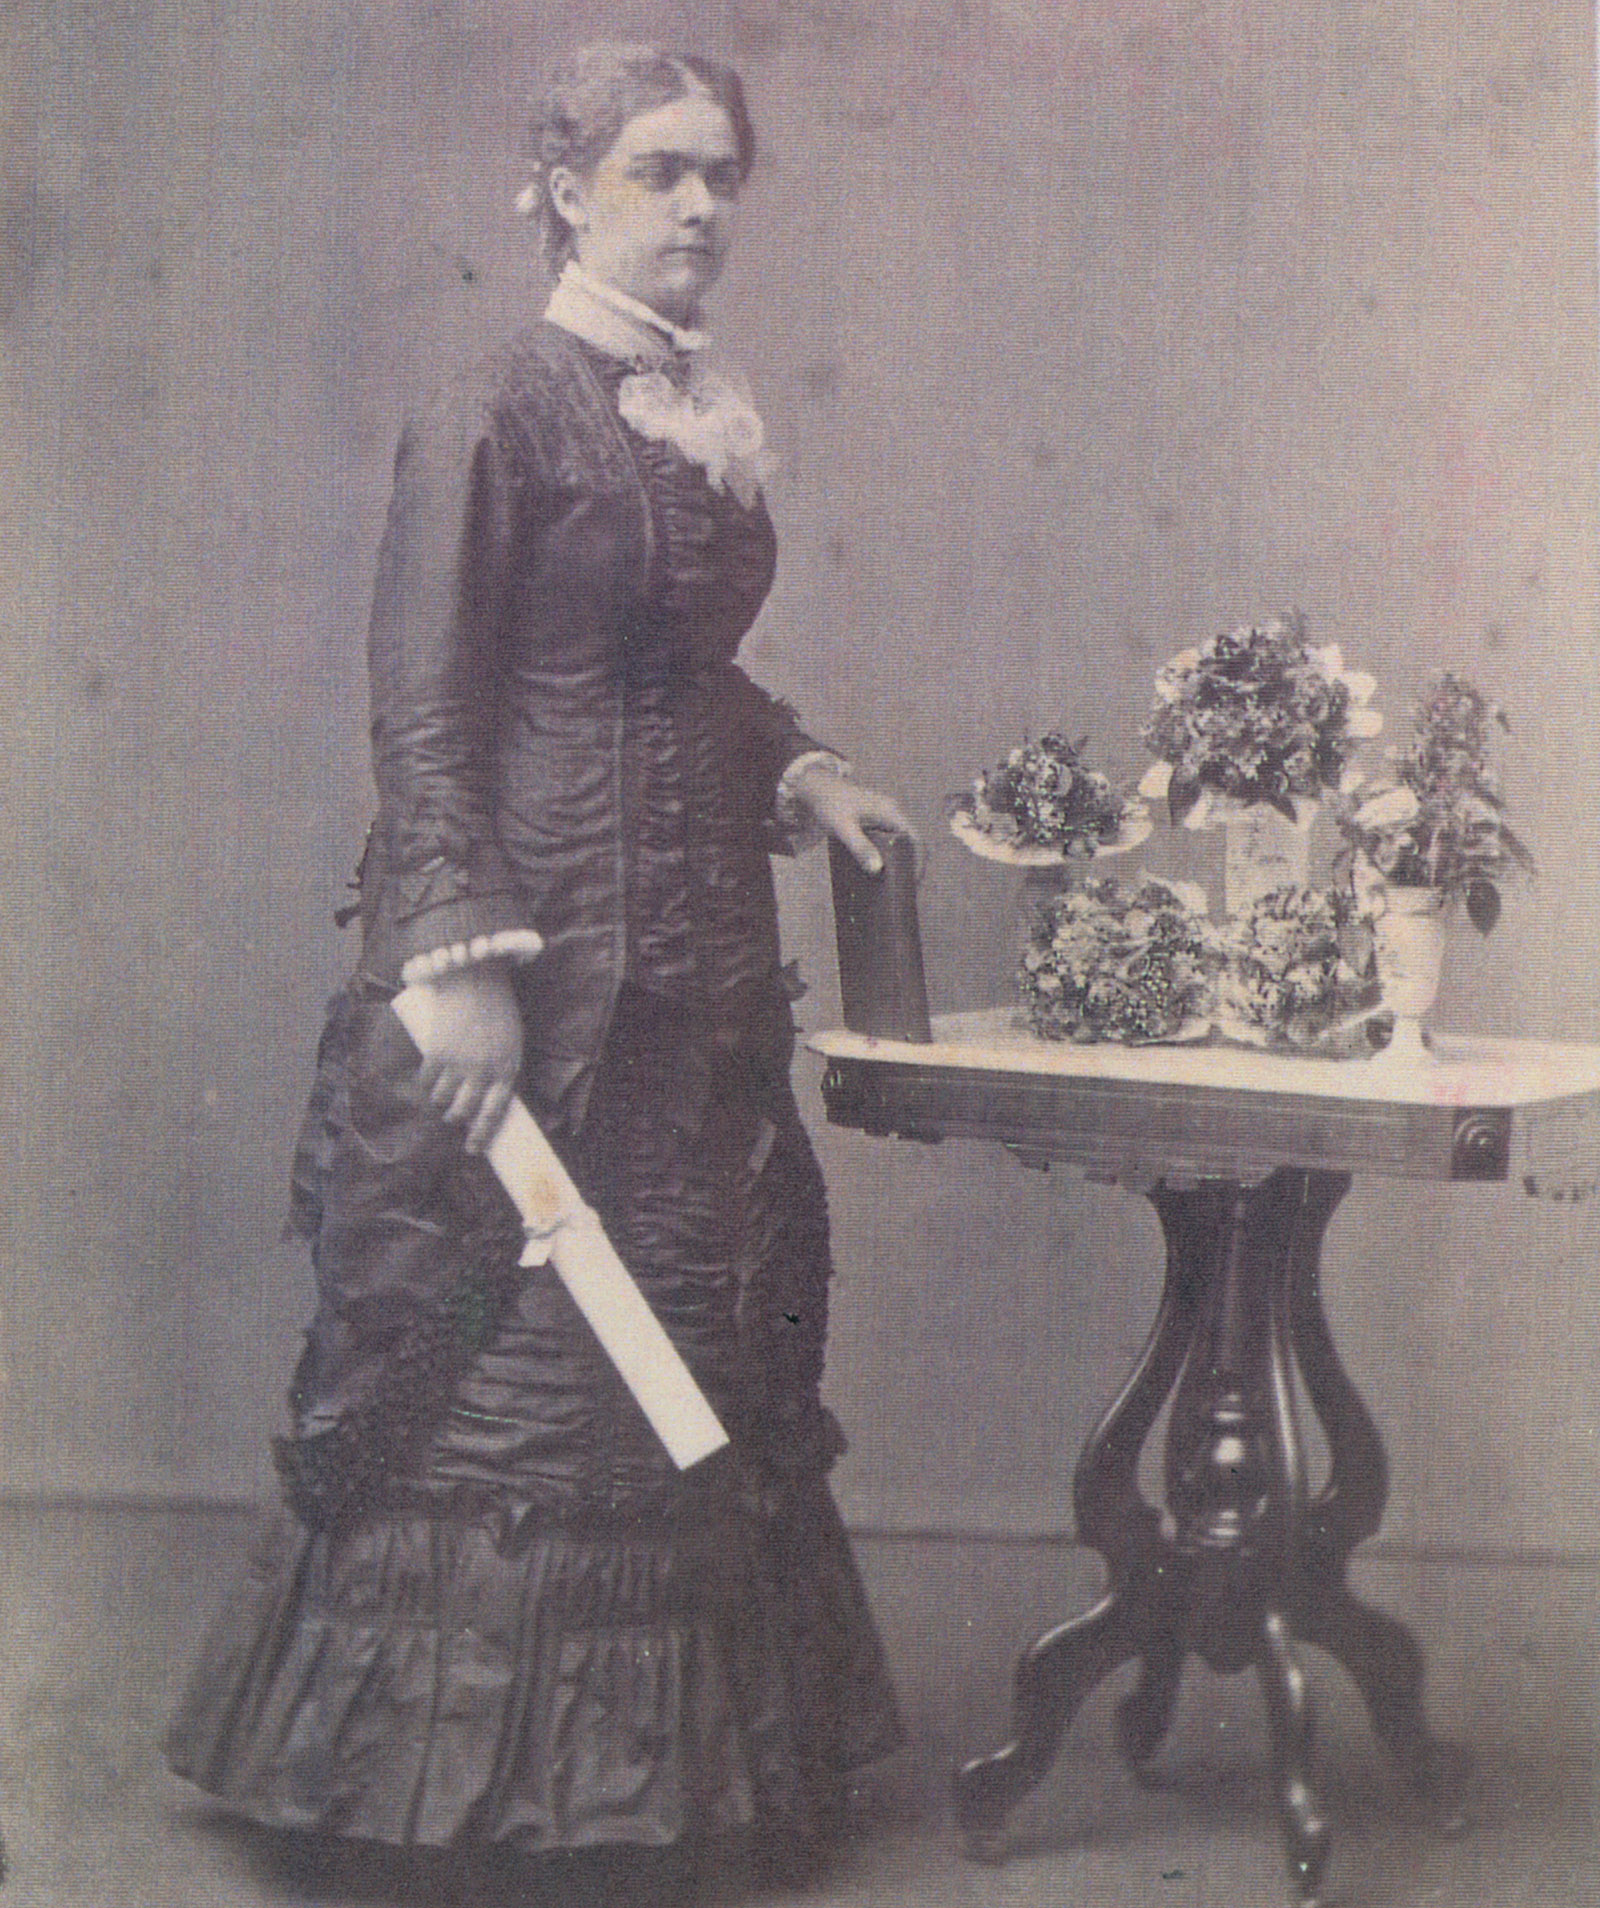 Sarah Locke poses in her graduation photograph, May 21, 1880. The dress worn in the photograph is also in the Sarah Locke Smith